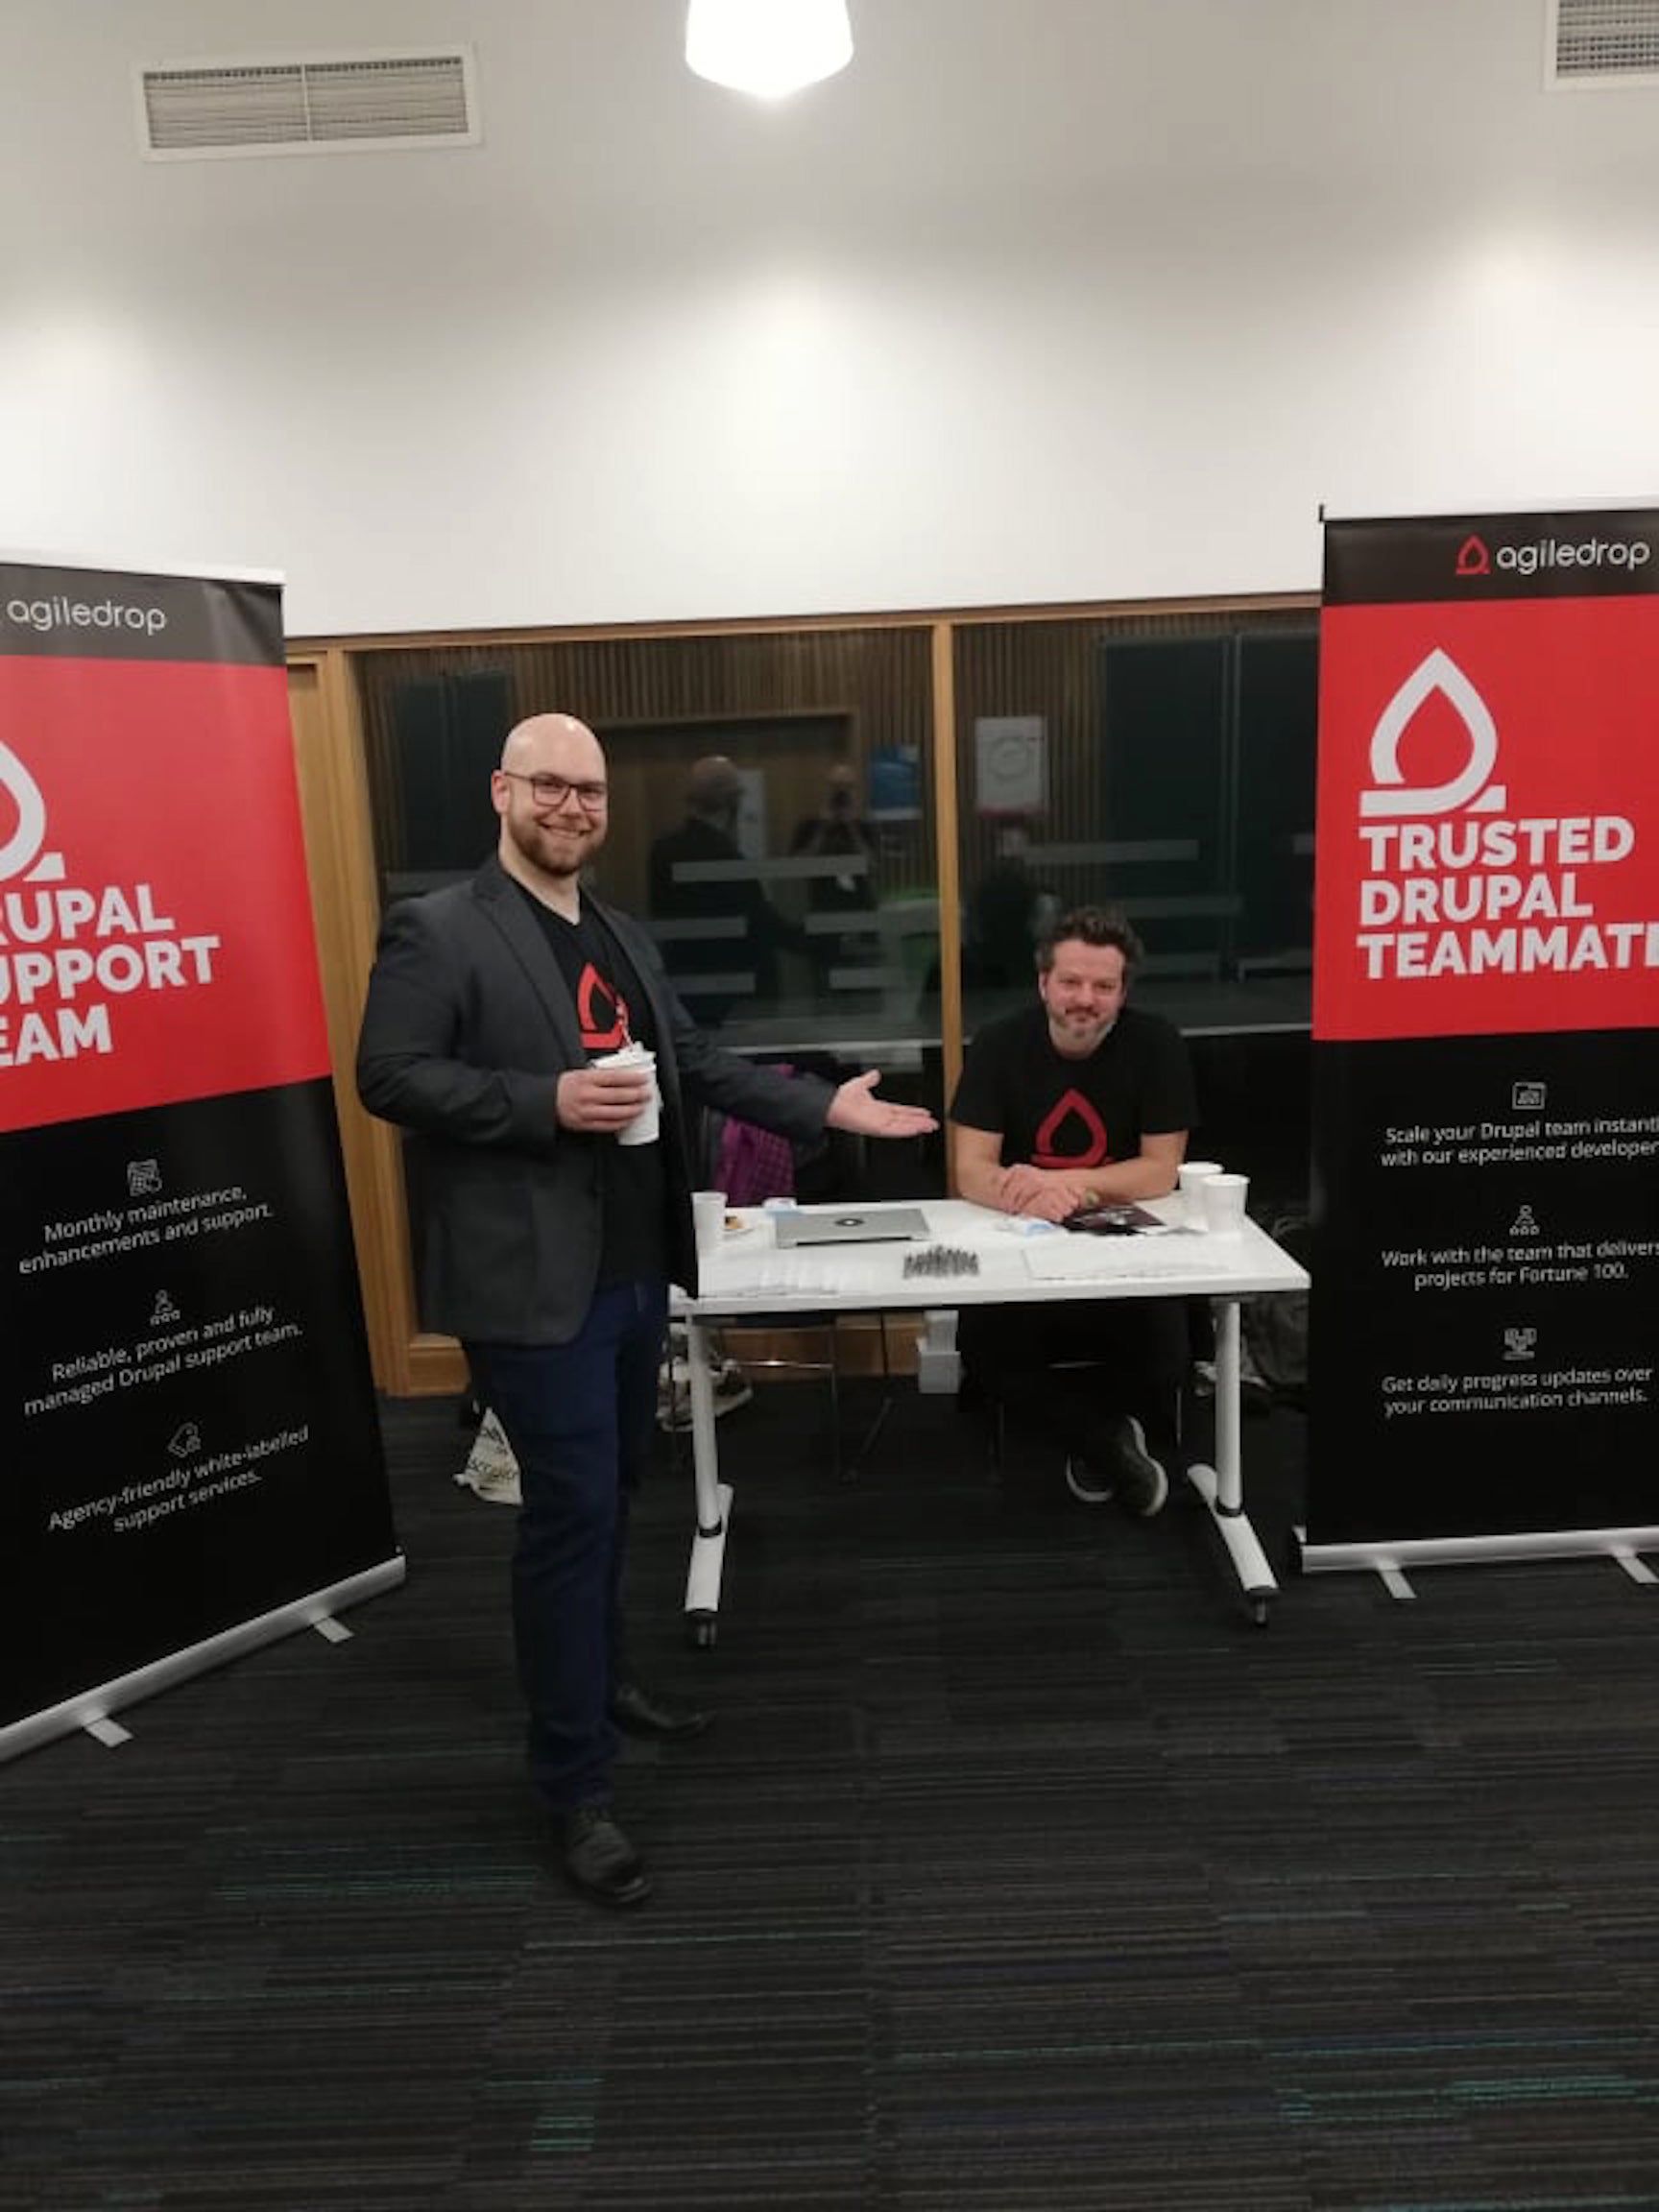 Aleš and Iztok at Agiledrop's booth at DrupalCamp London 2019